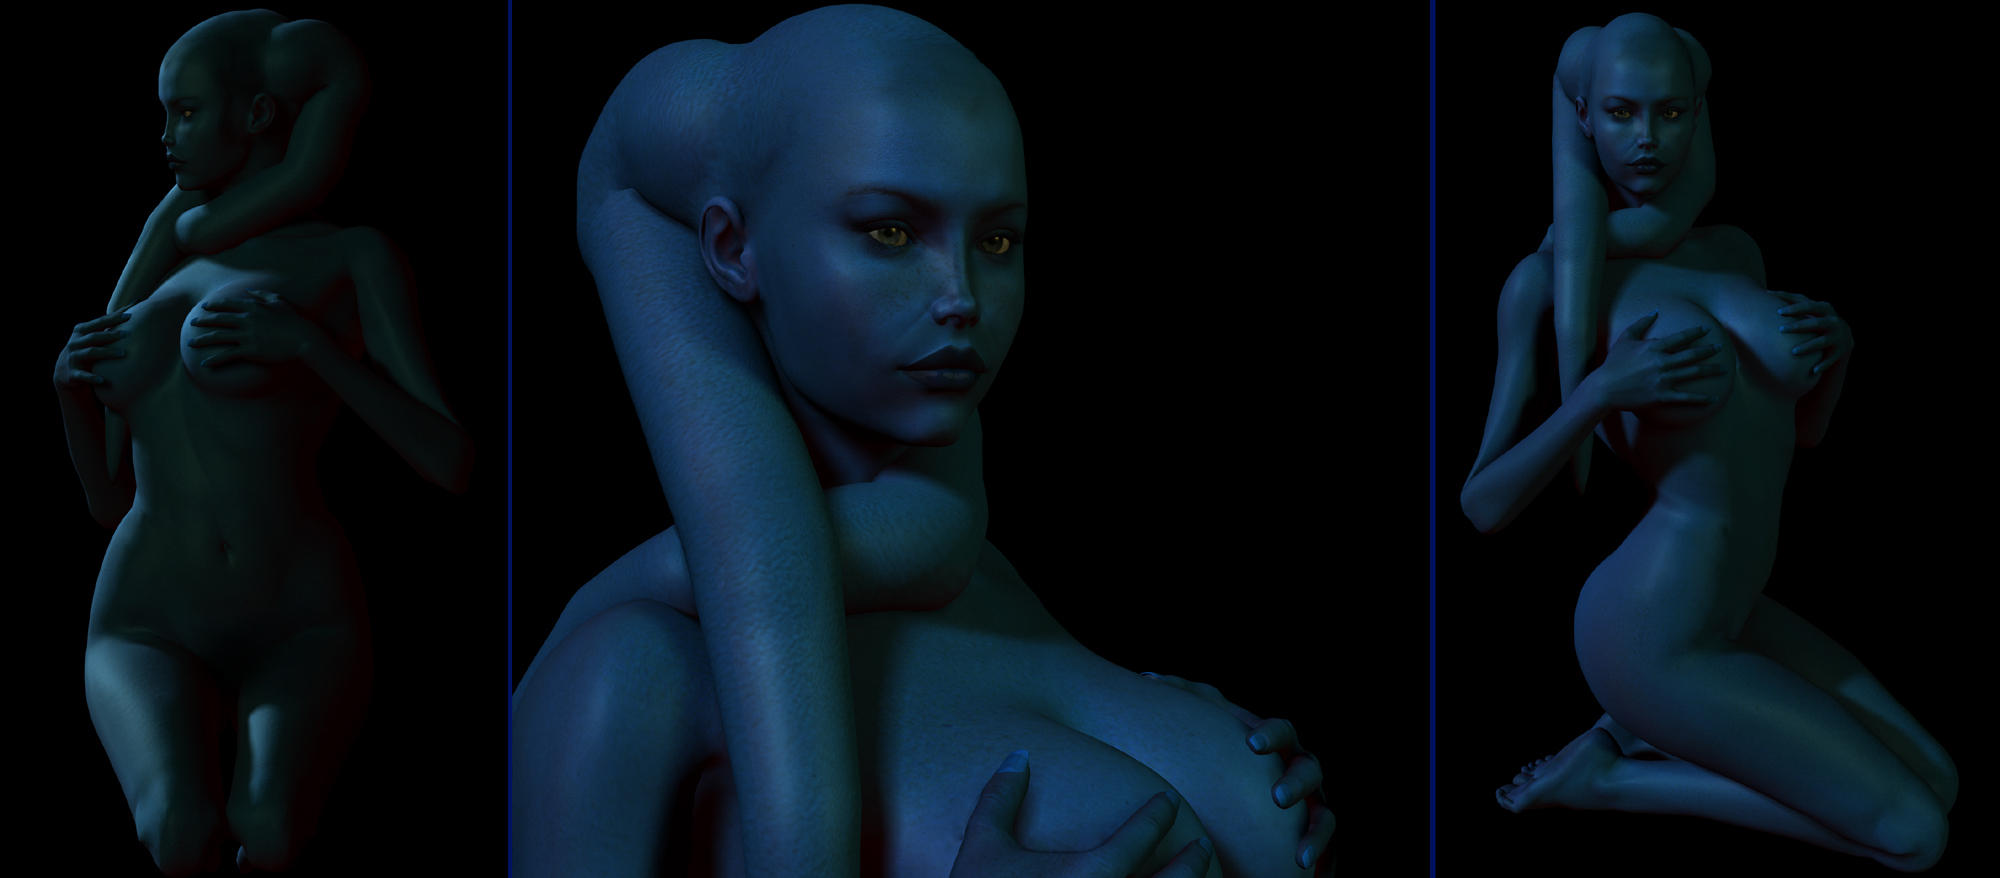 Twi'lek sexy wallpapers exposed scene